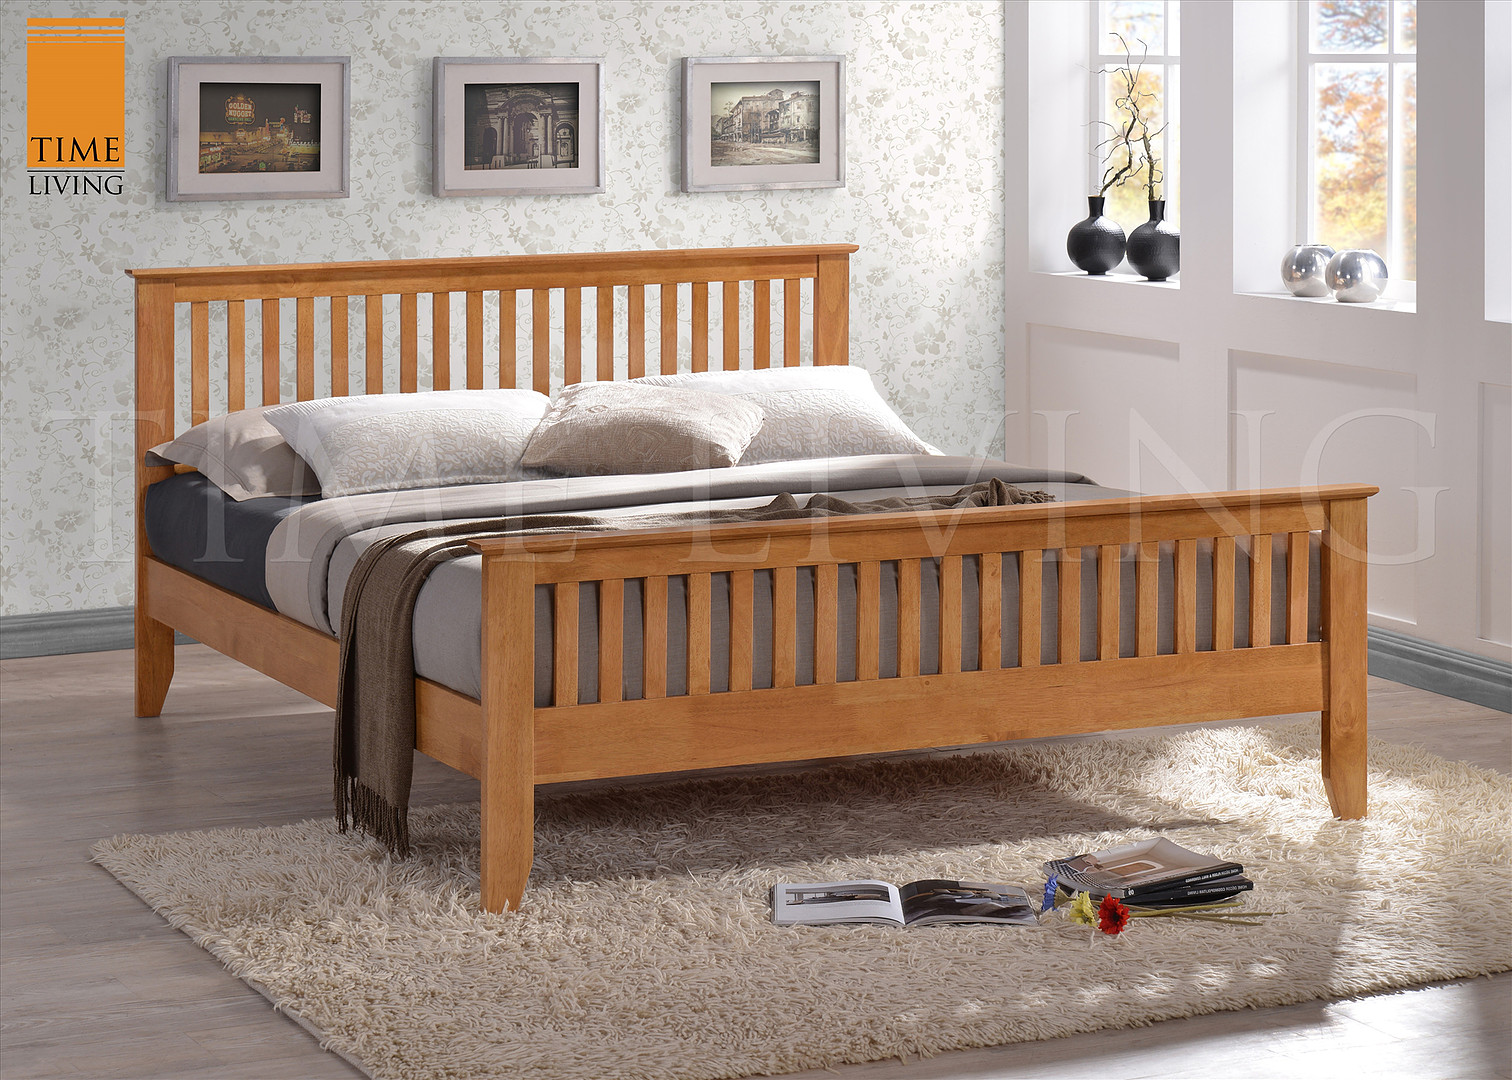 Turin Honey Oak 4ft6 Double Bed Frame £225